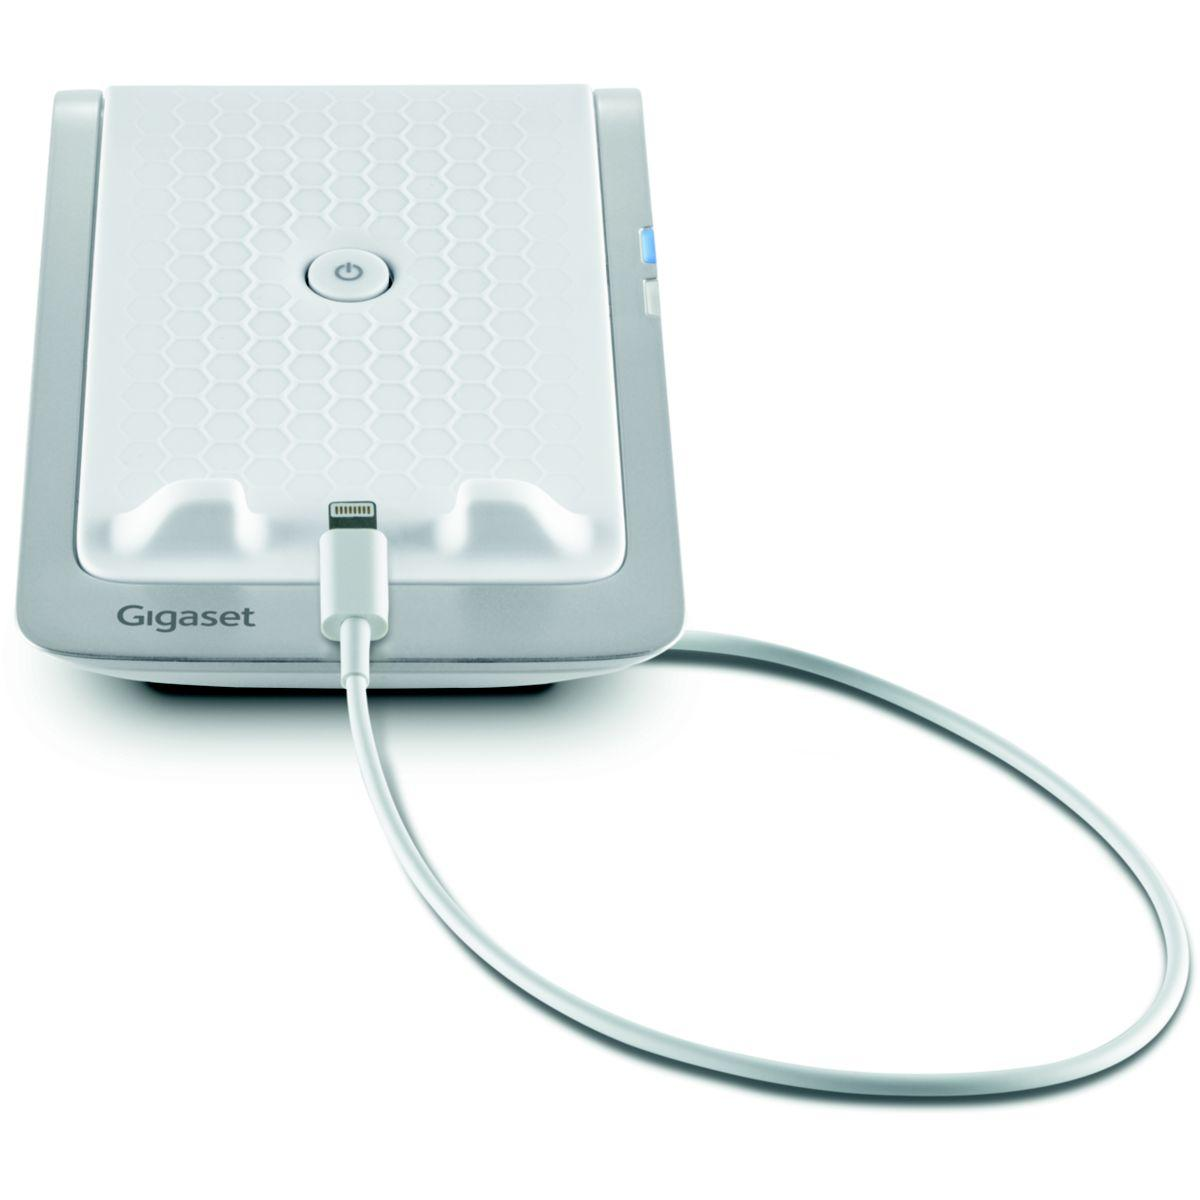 Dock gigaset lm 550i mobile dock ios blanc - livraison offerte avec le code livofferte (photo)